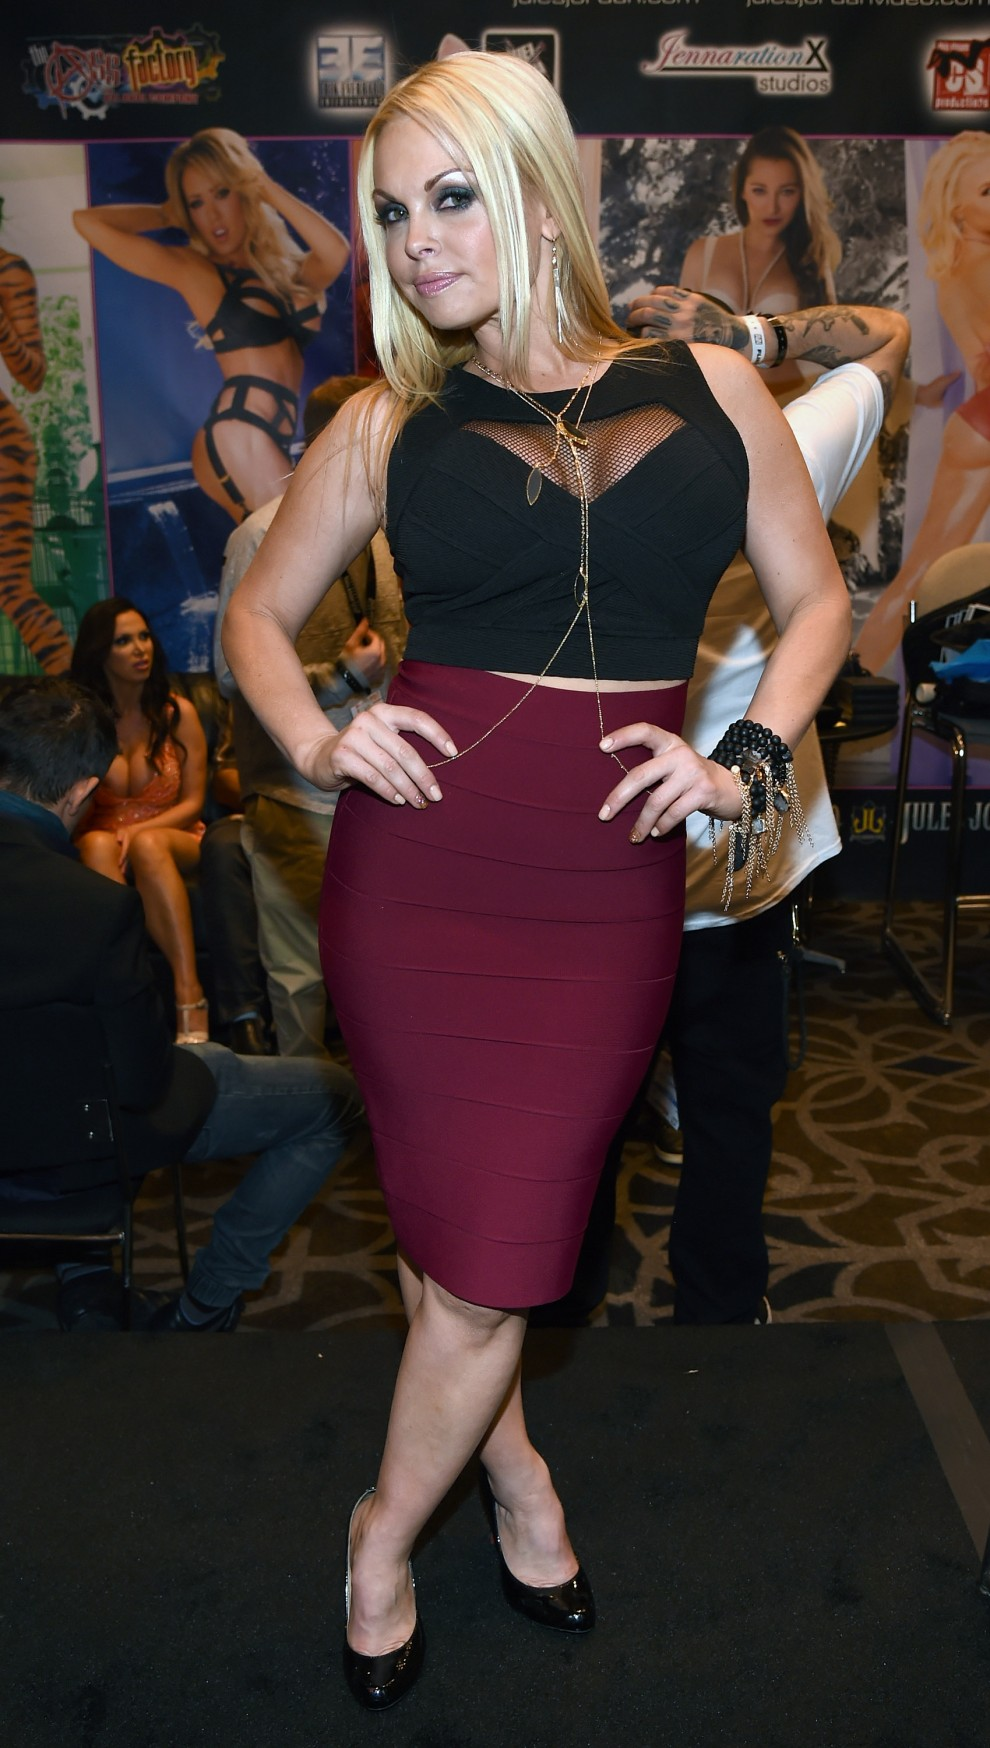 Sara jay flower tucci and luscious lopez backstage - 1 1